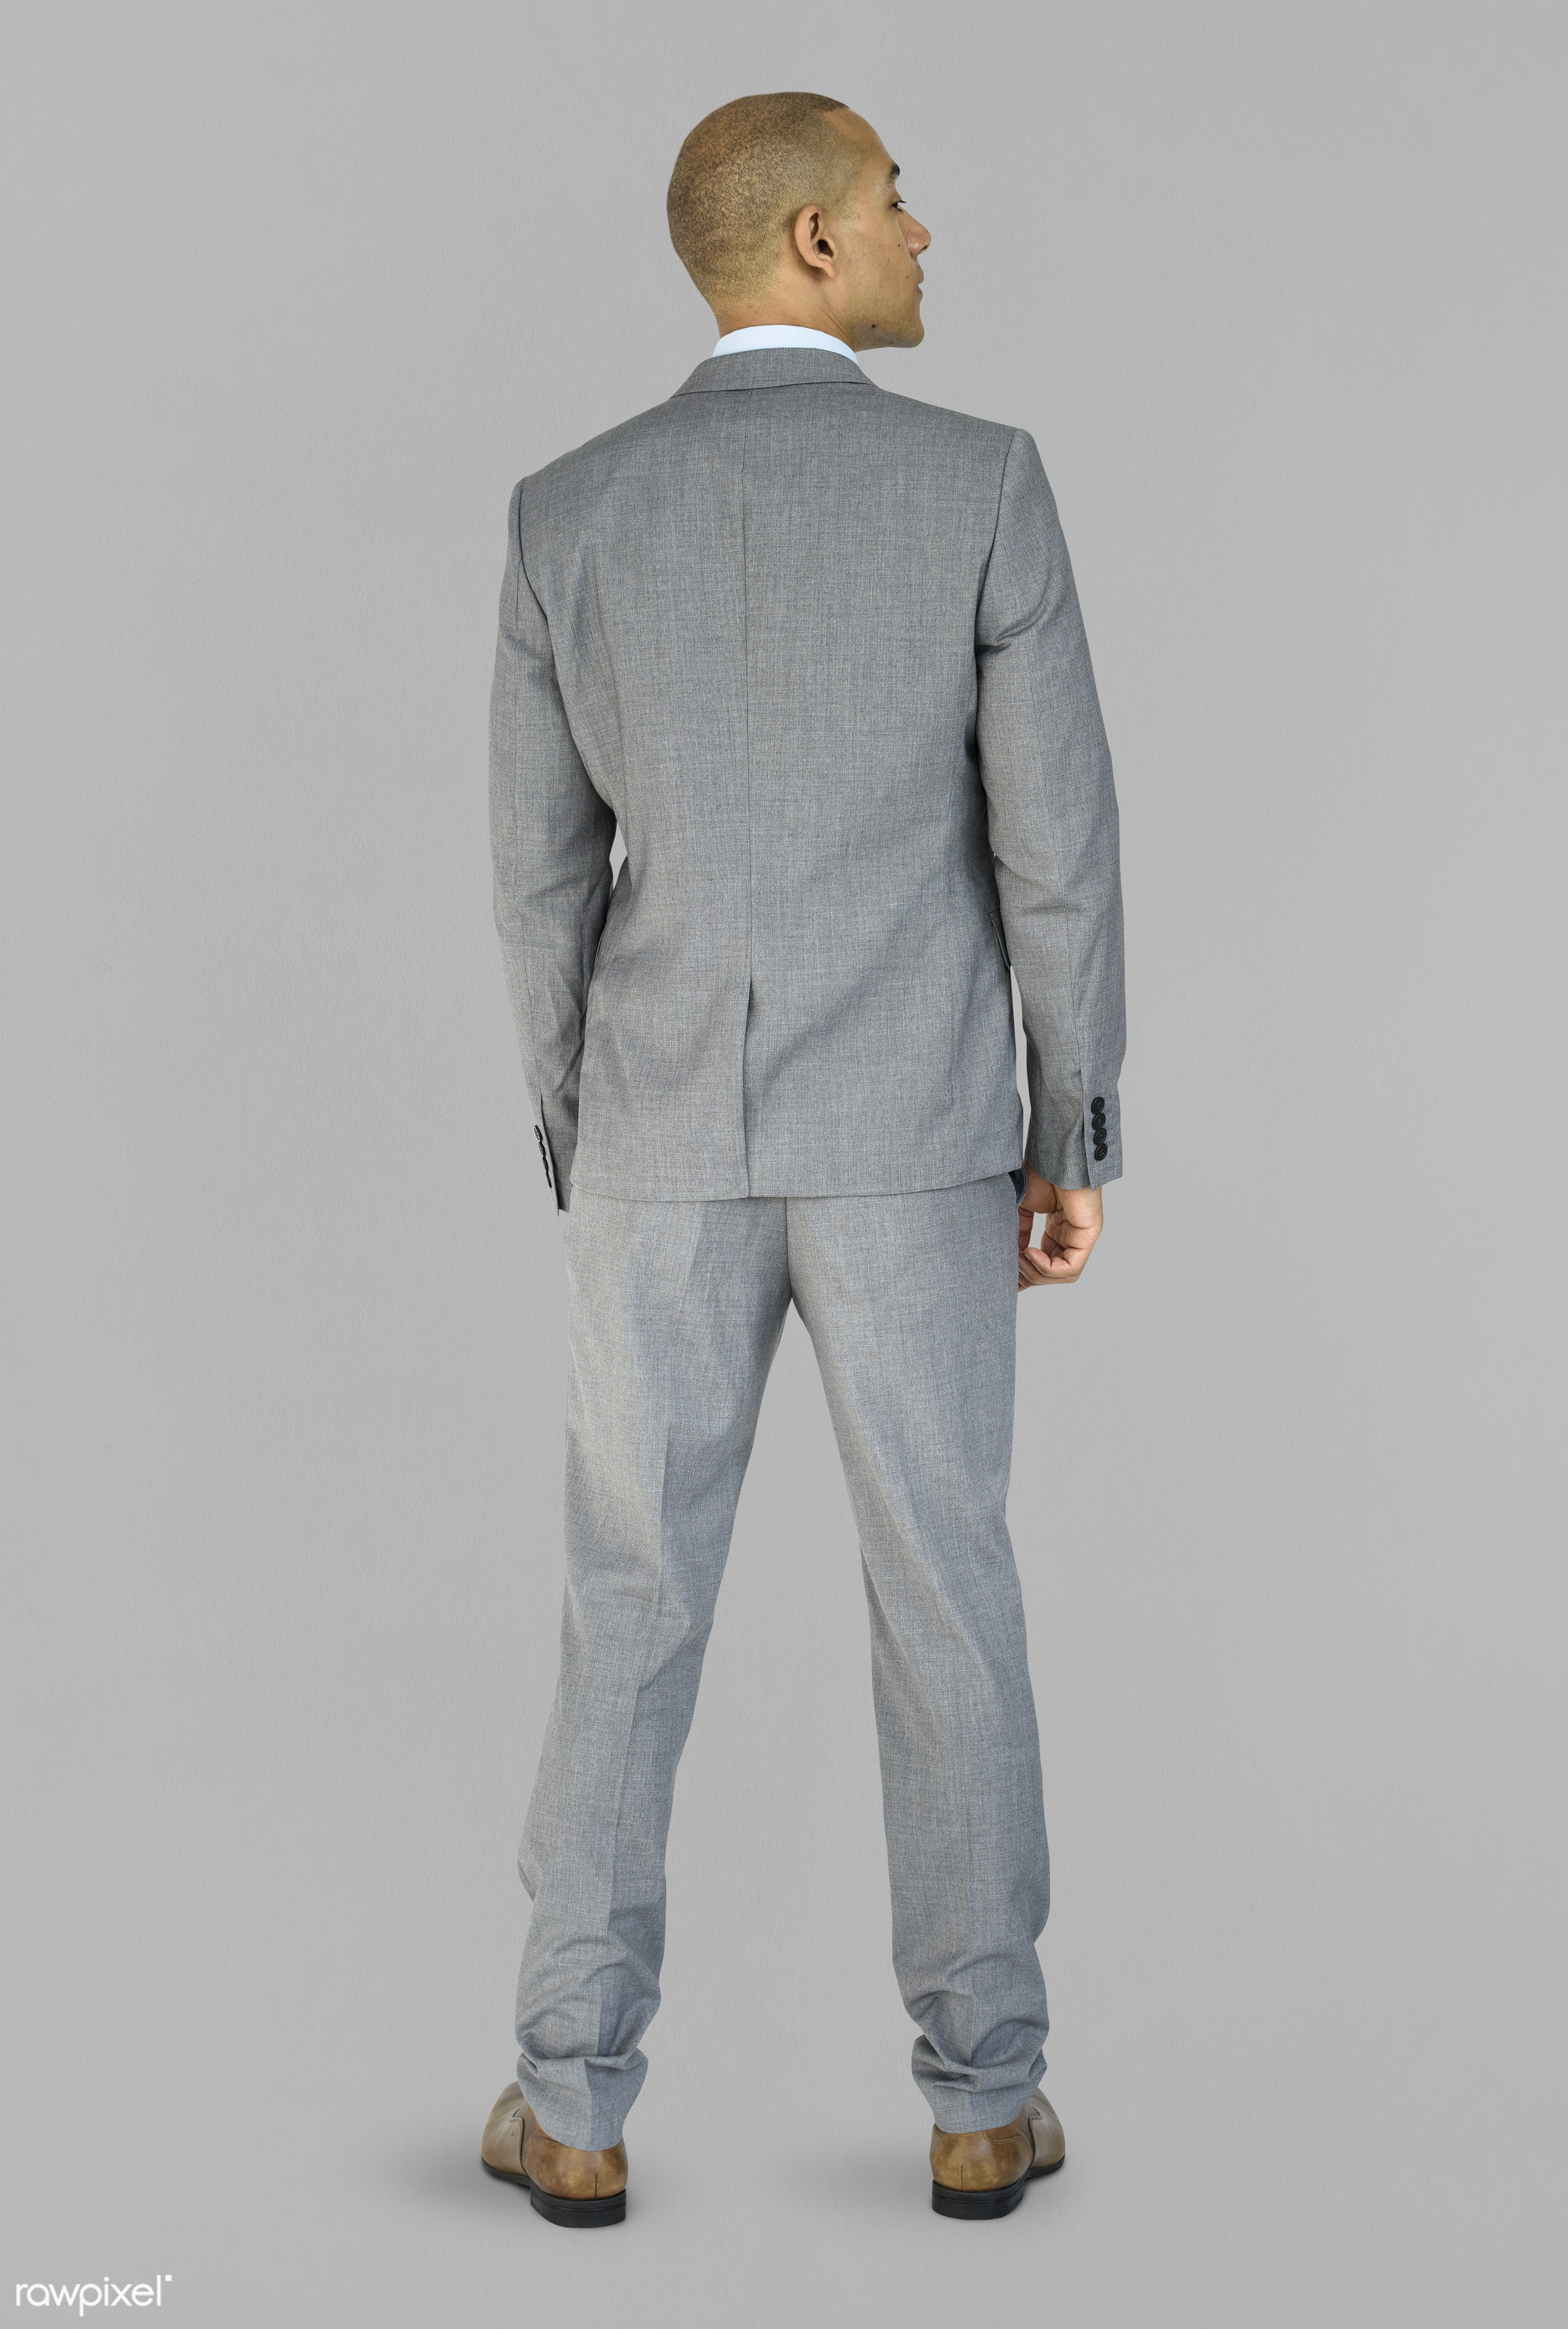 studio, person, people, business, businessman, grey, man, abstract, rear view, isolated, male, adult, portrait, formal,...